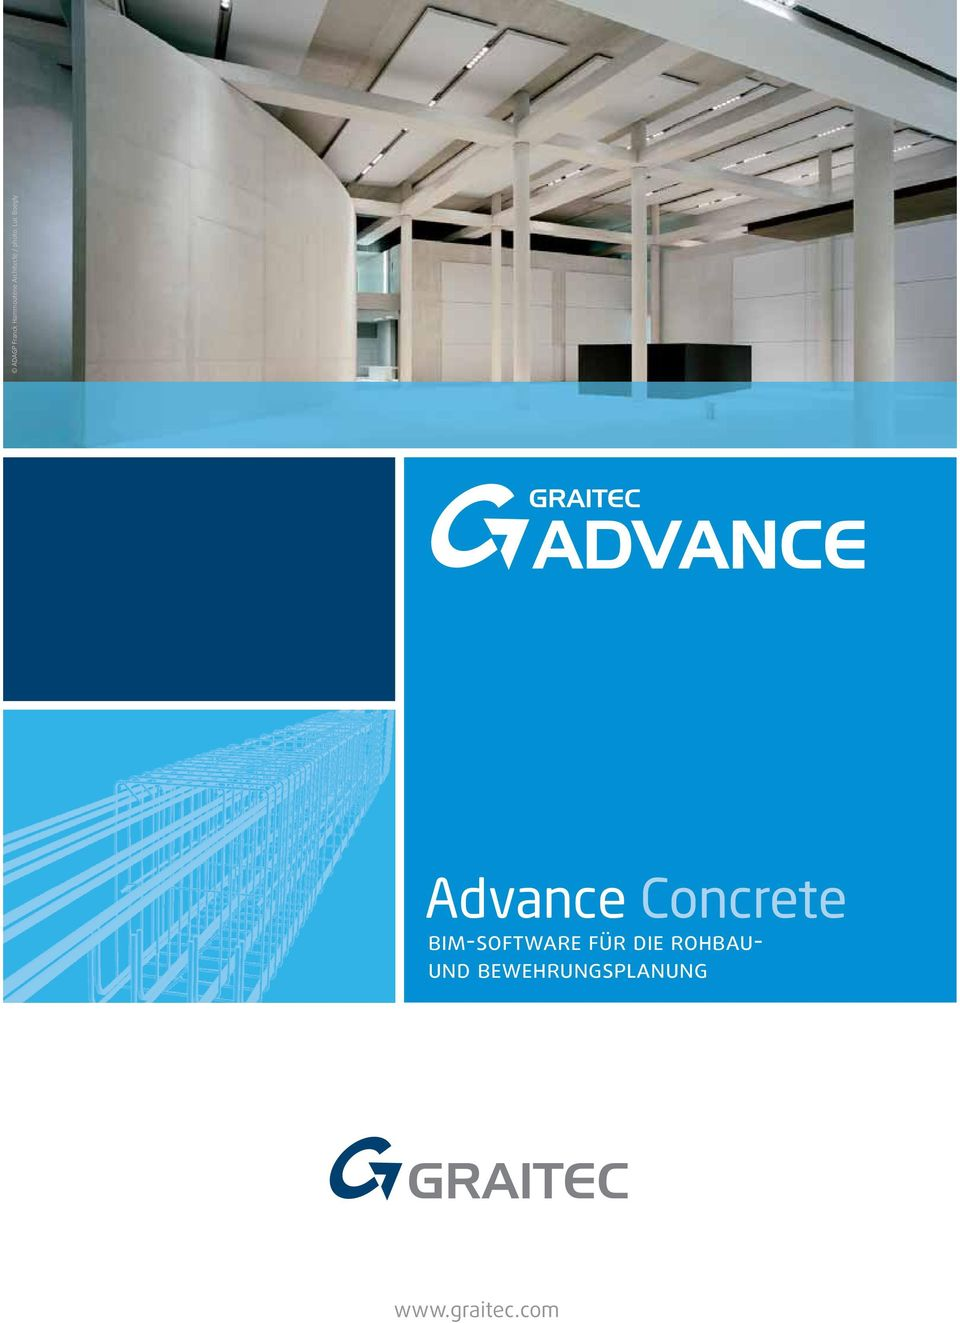 Advance Concrete bim-software für